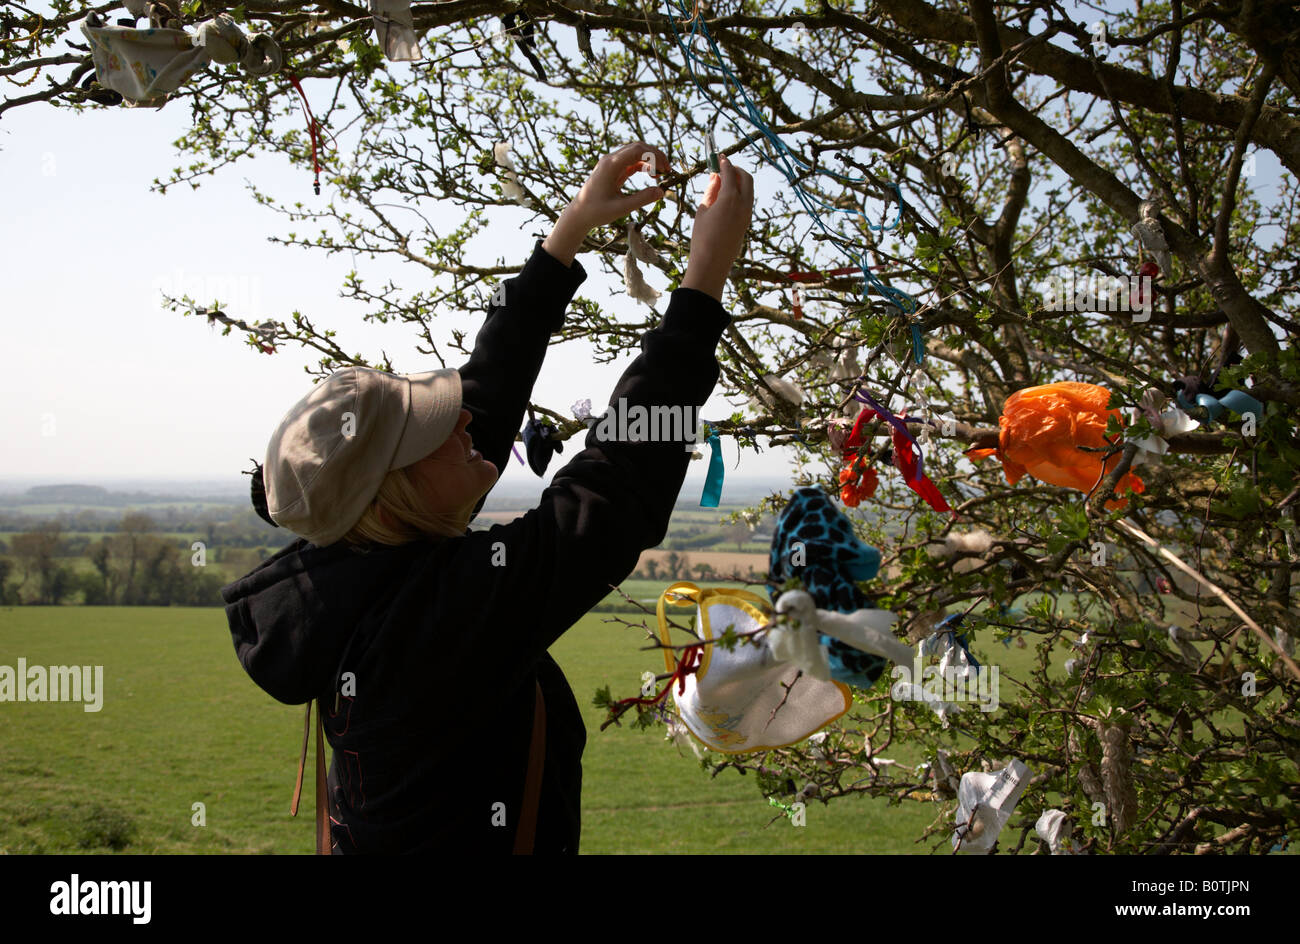 female tourist attaching offering to a fairy thorn tree on